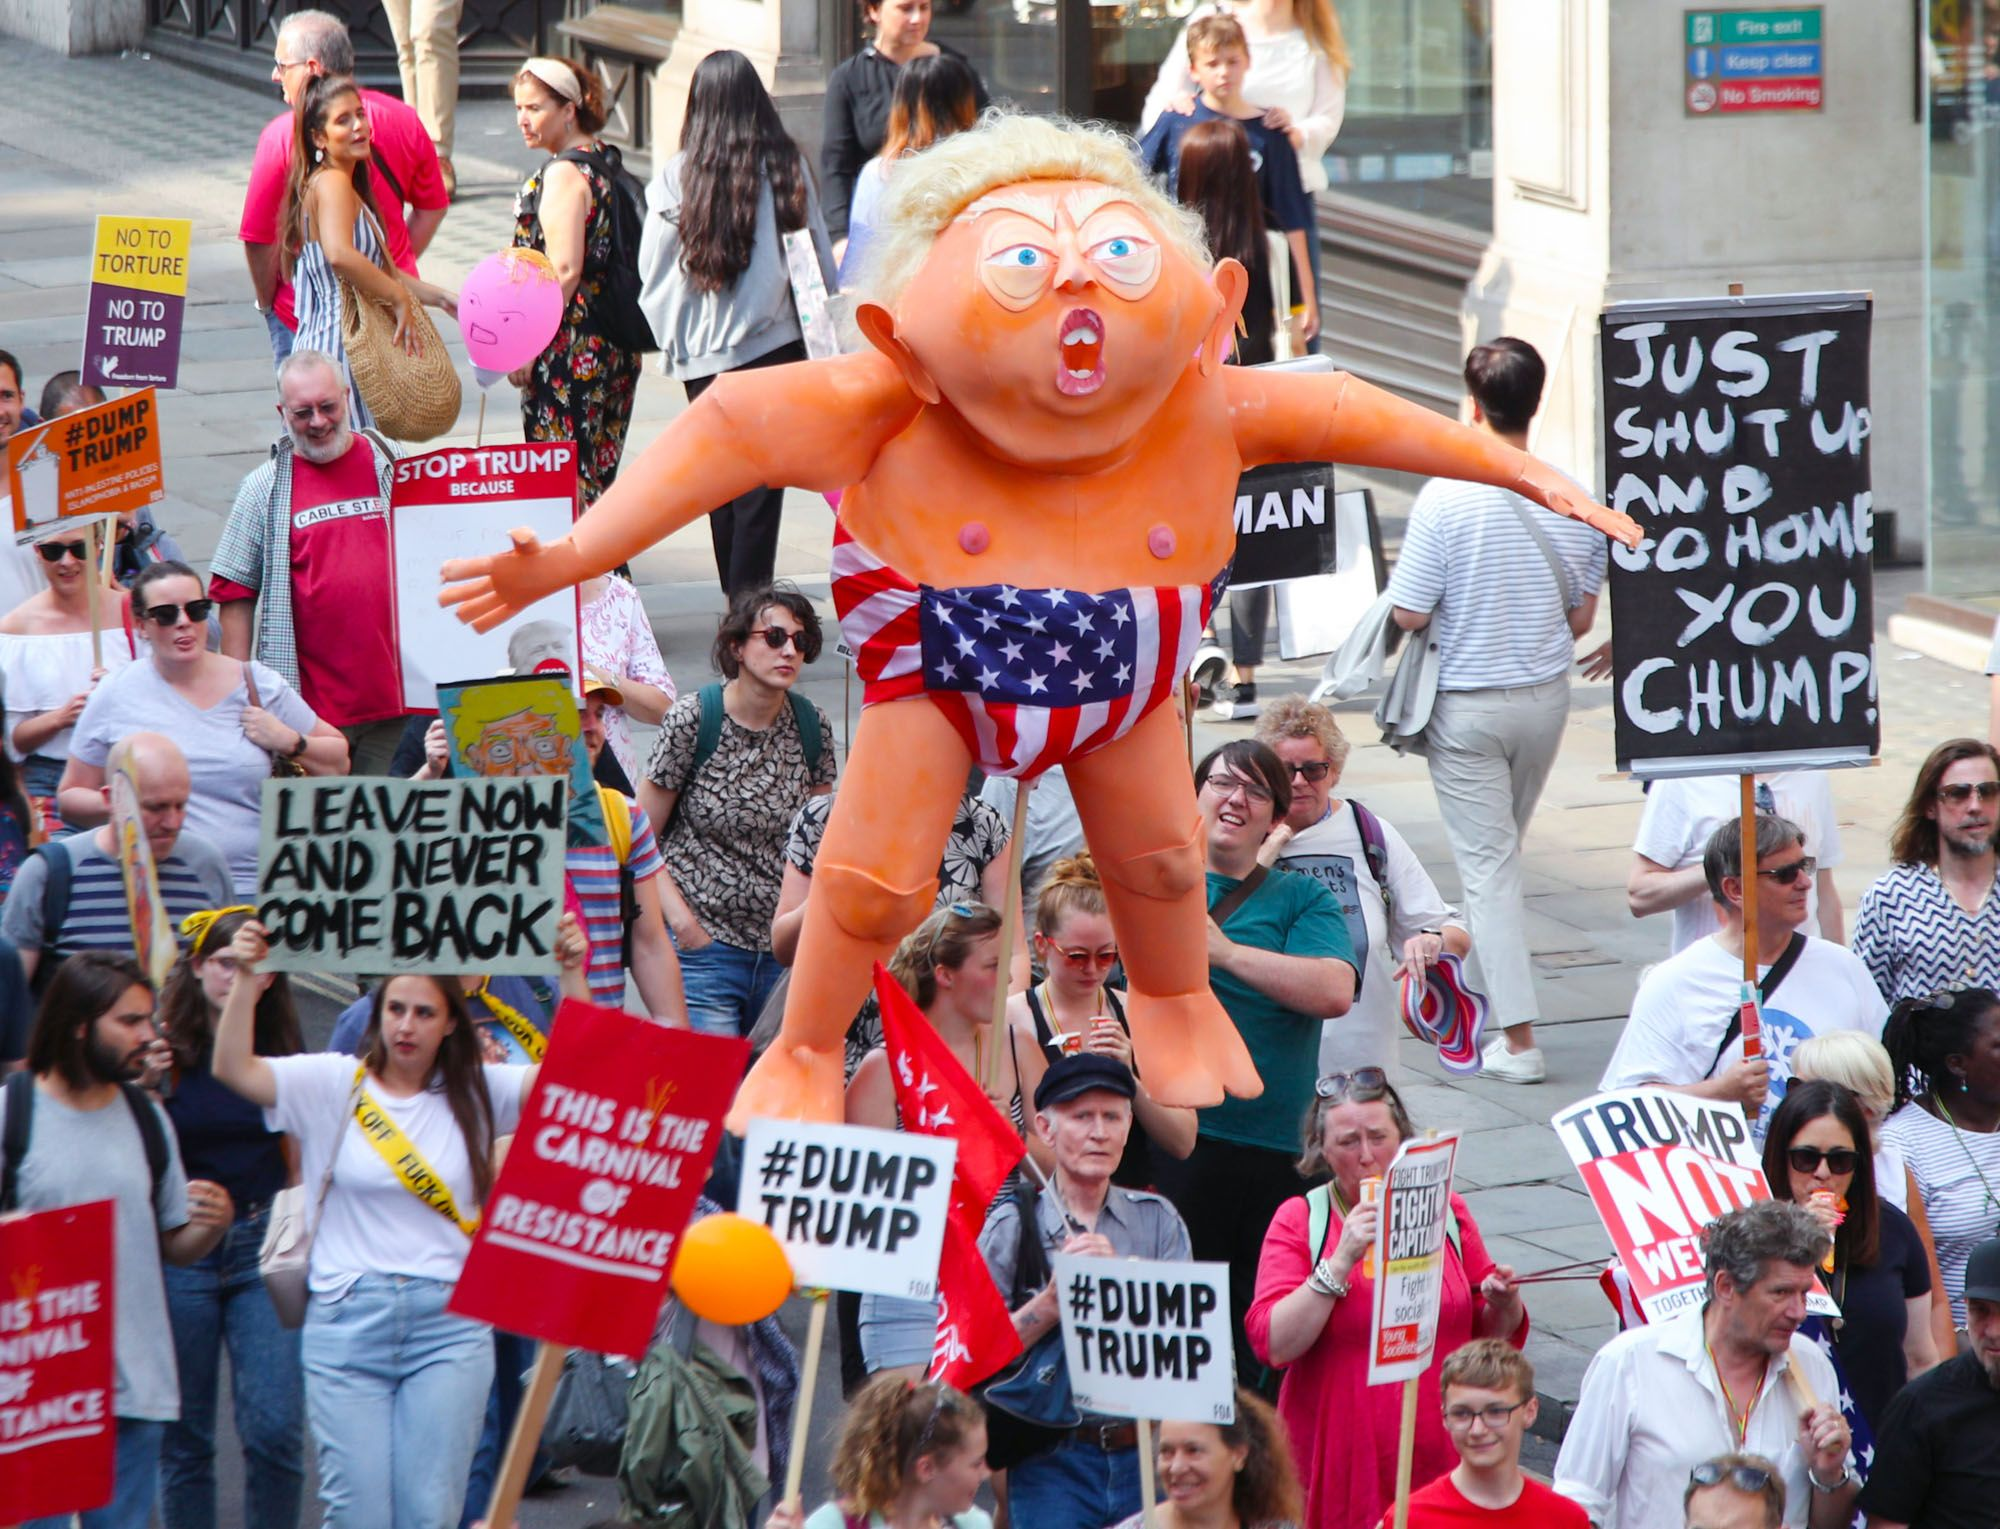 The 25 Cheekiest Signs From the London Trump Protests